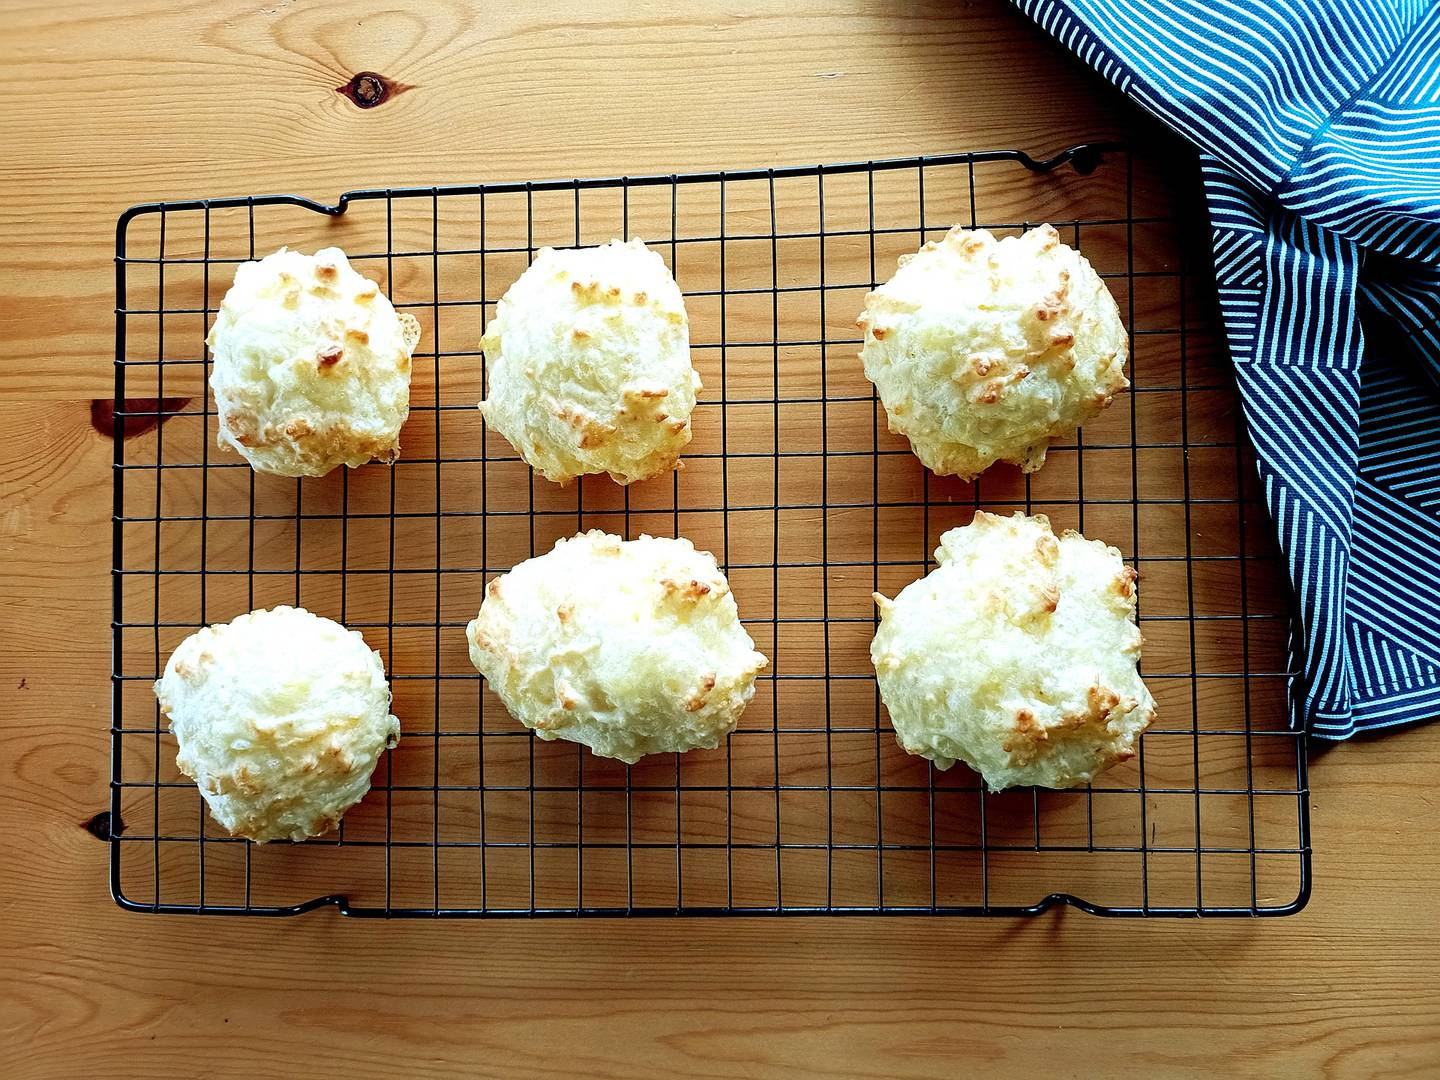 These cheese puffs don't take long to cool, enjoy! Photo / NZH